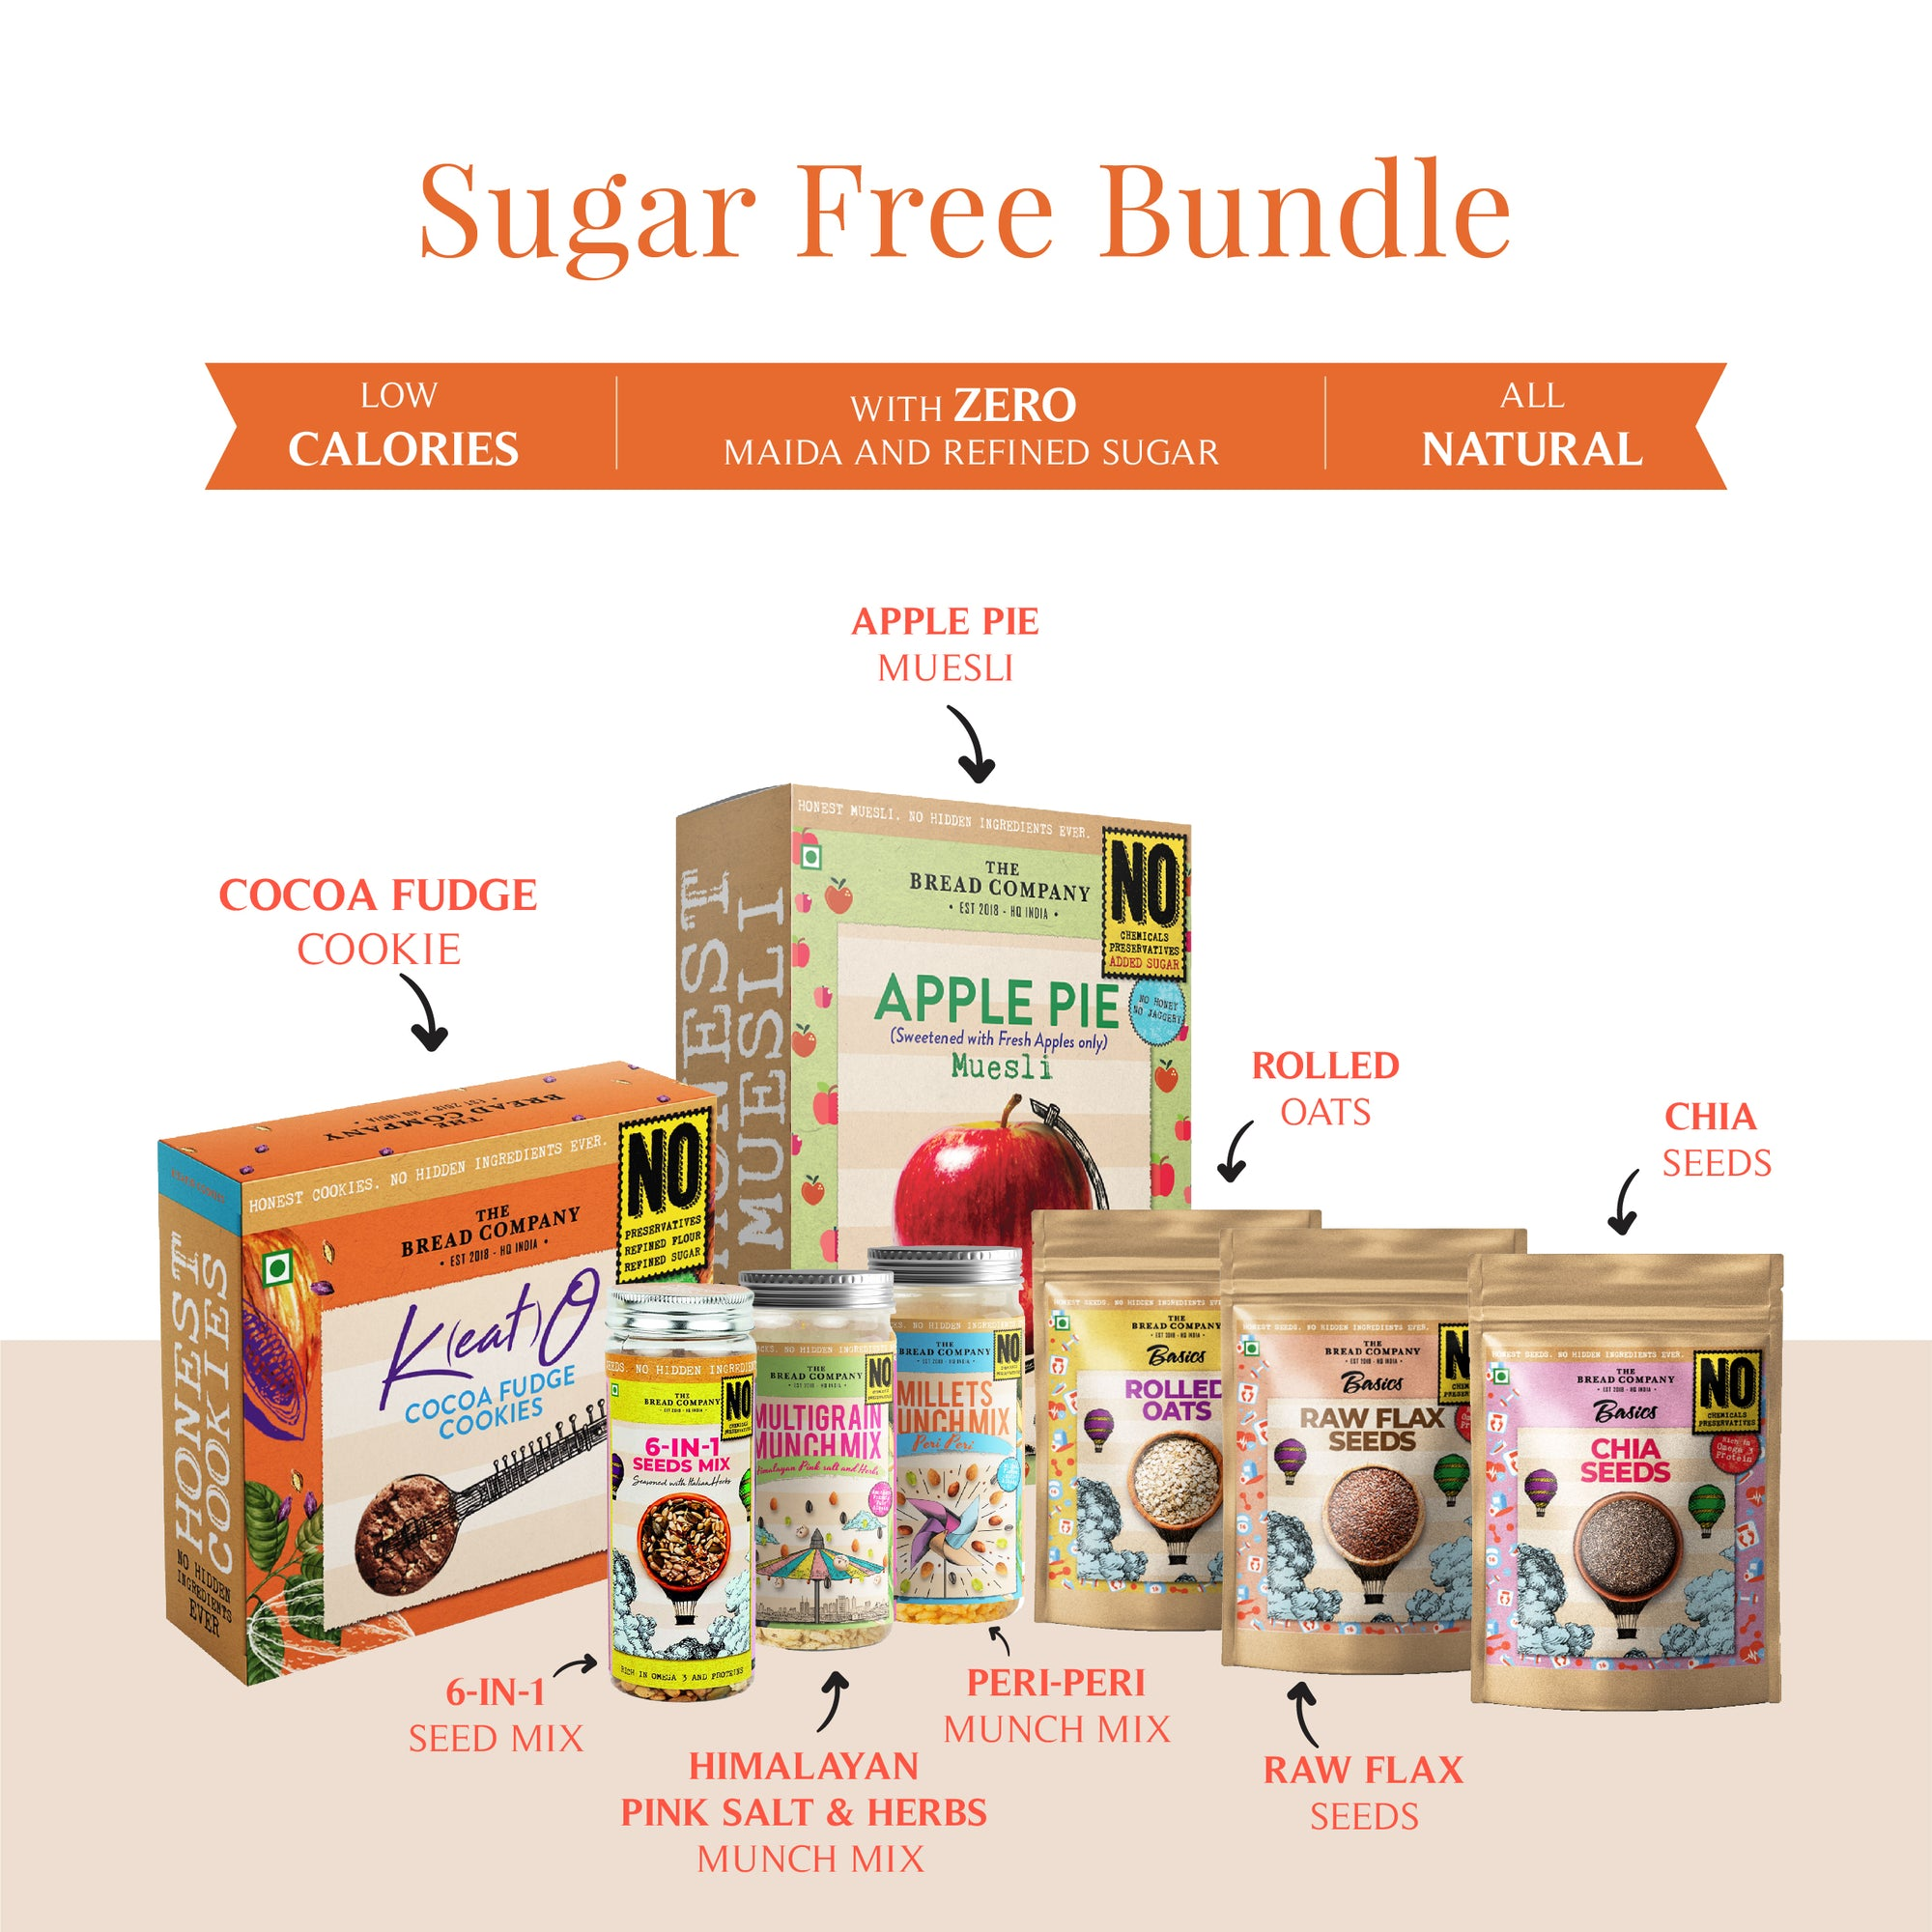 SugarFree bundle